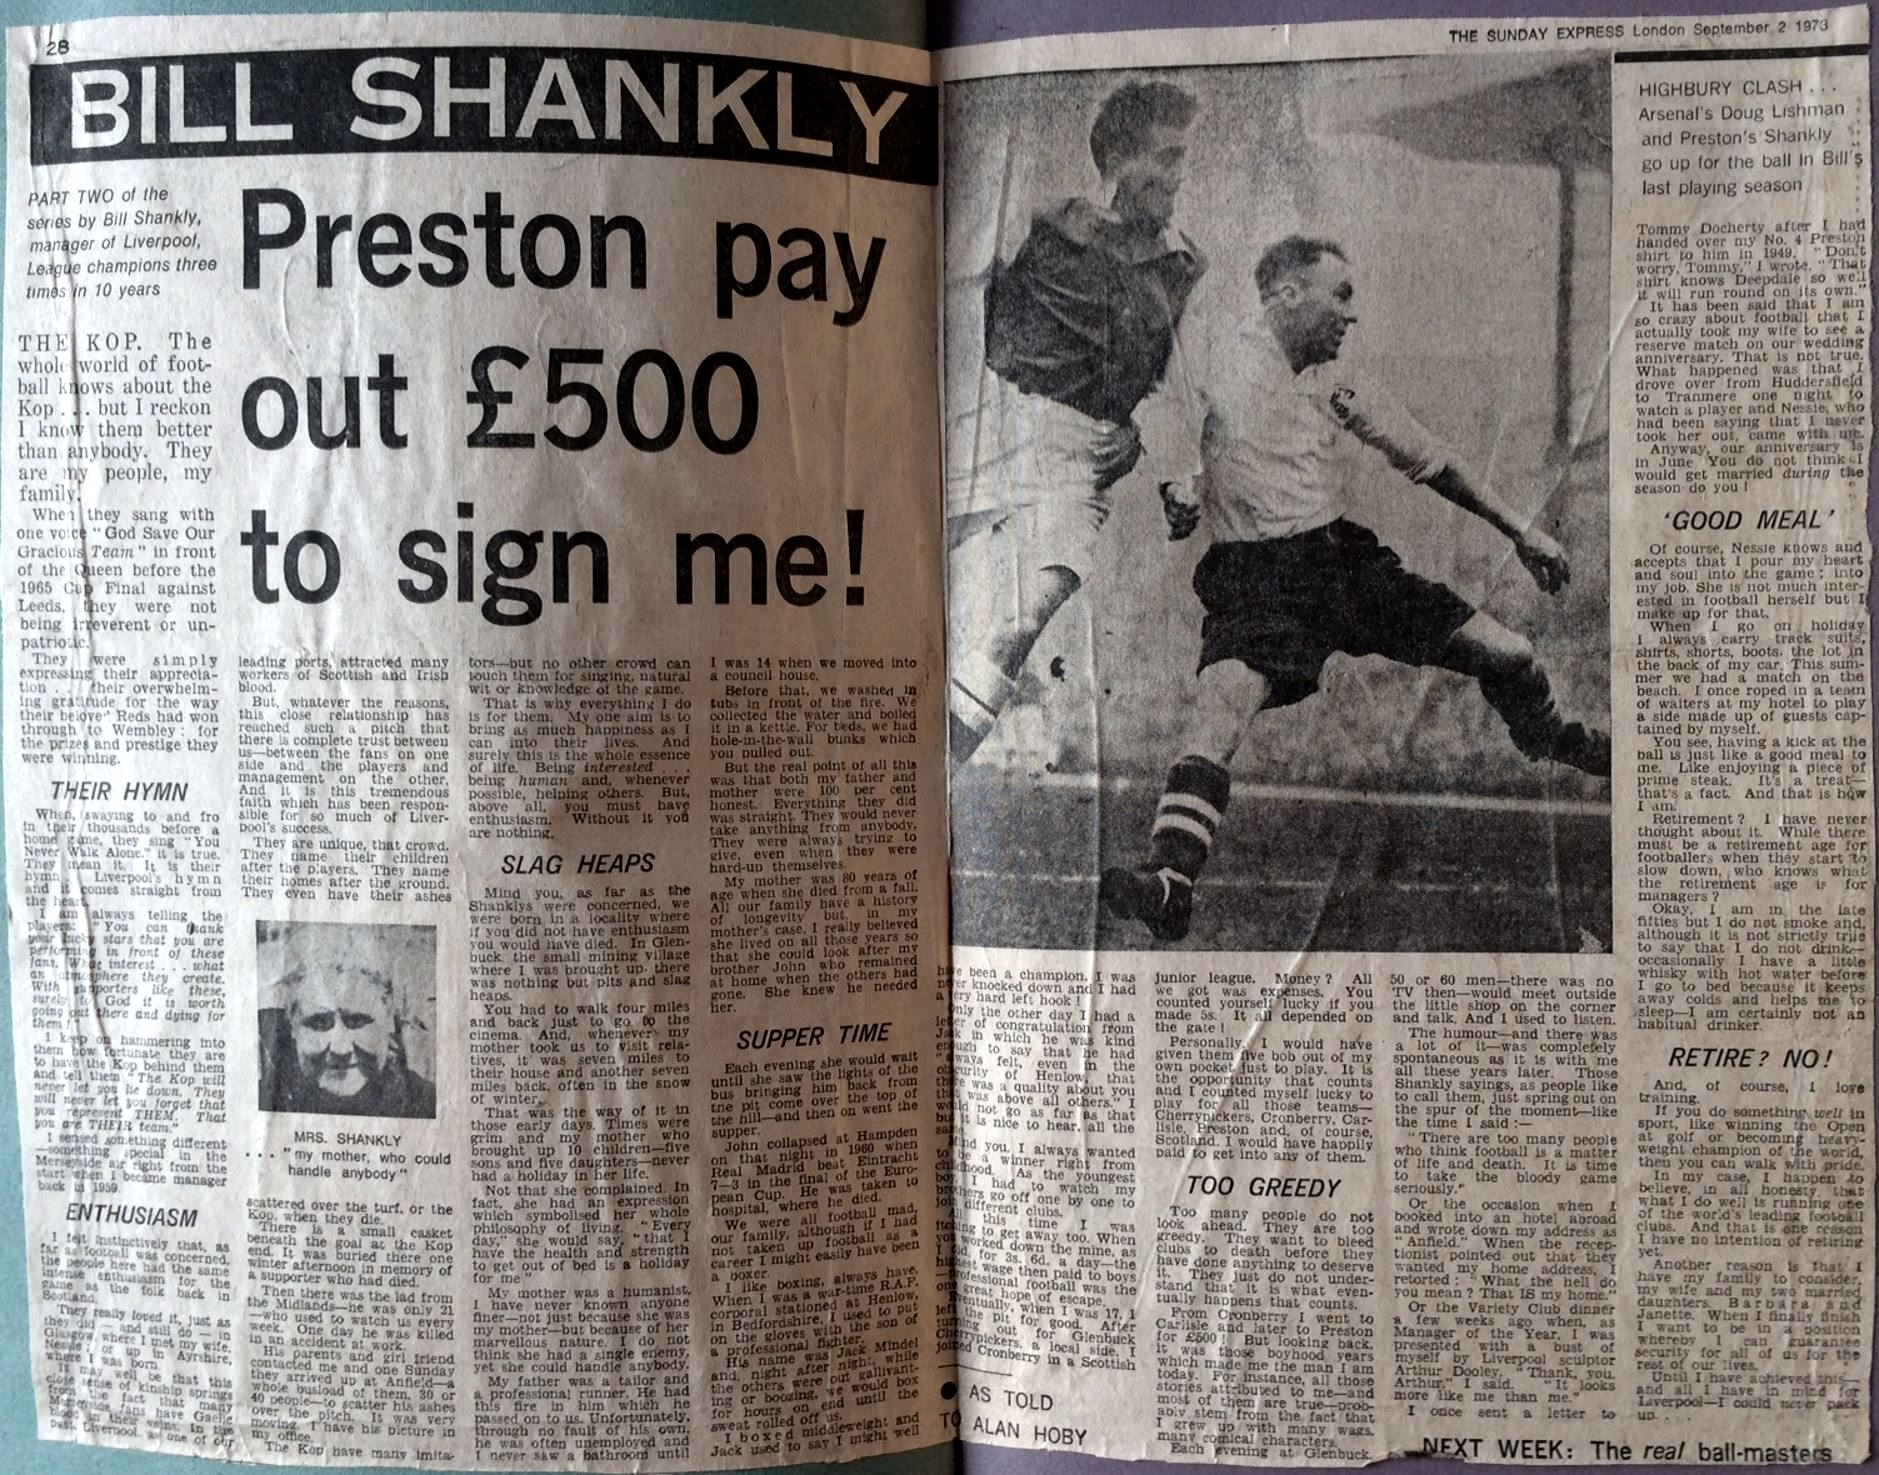 Sunday Express series in 1973 - Preston pay out 500 pounds to sign me!